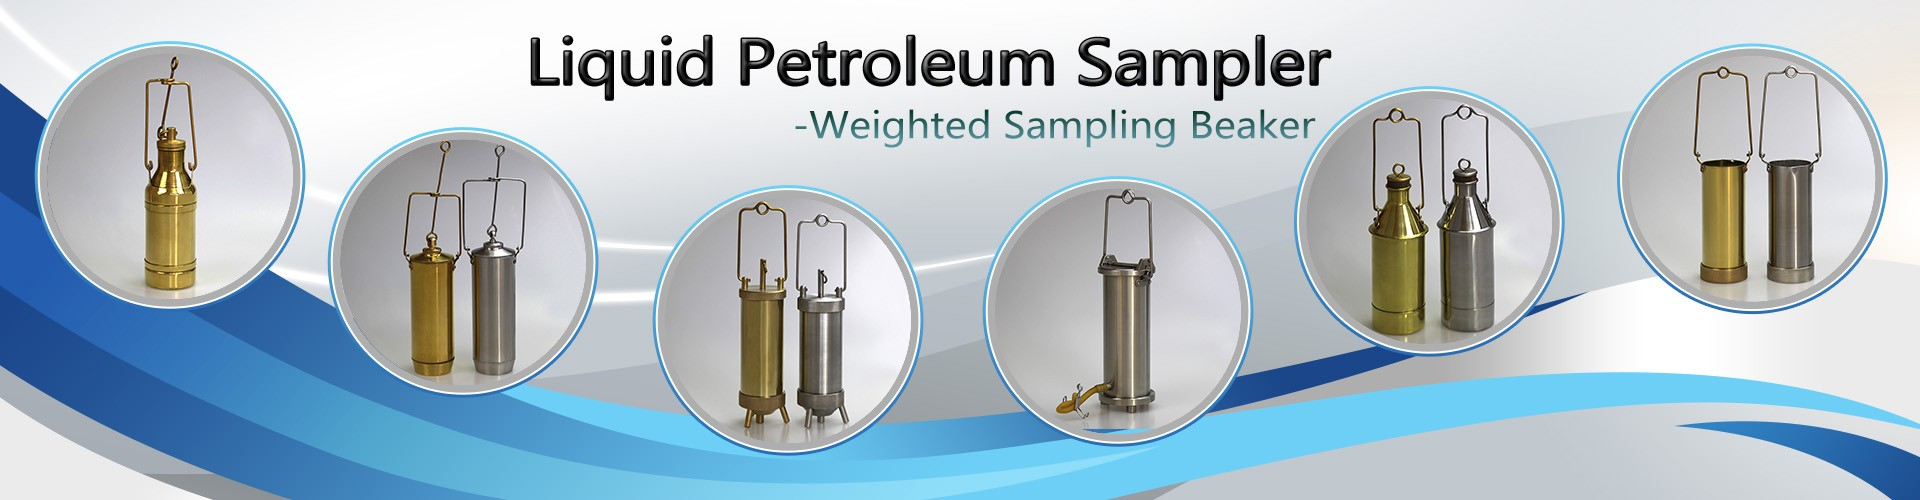 Liquid Petroleum Sampler